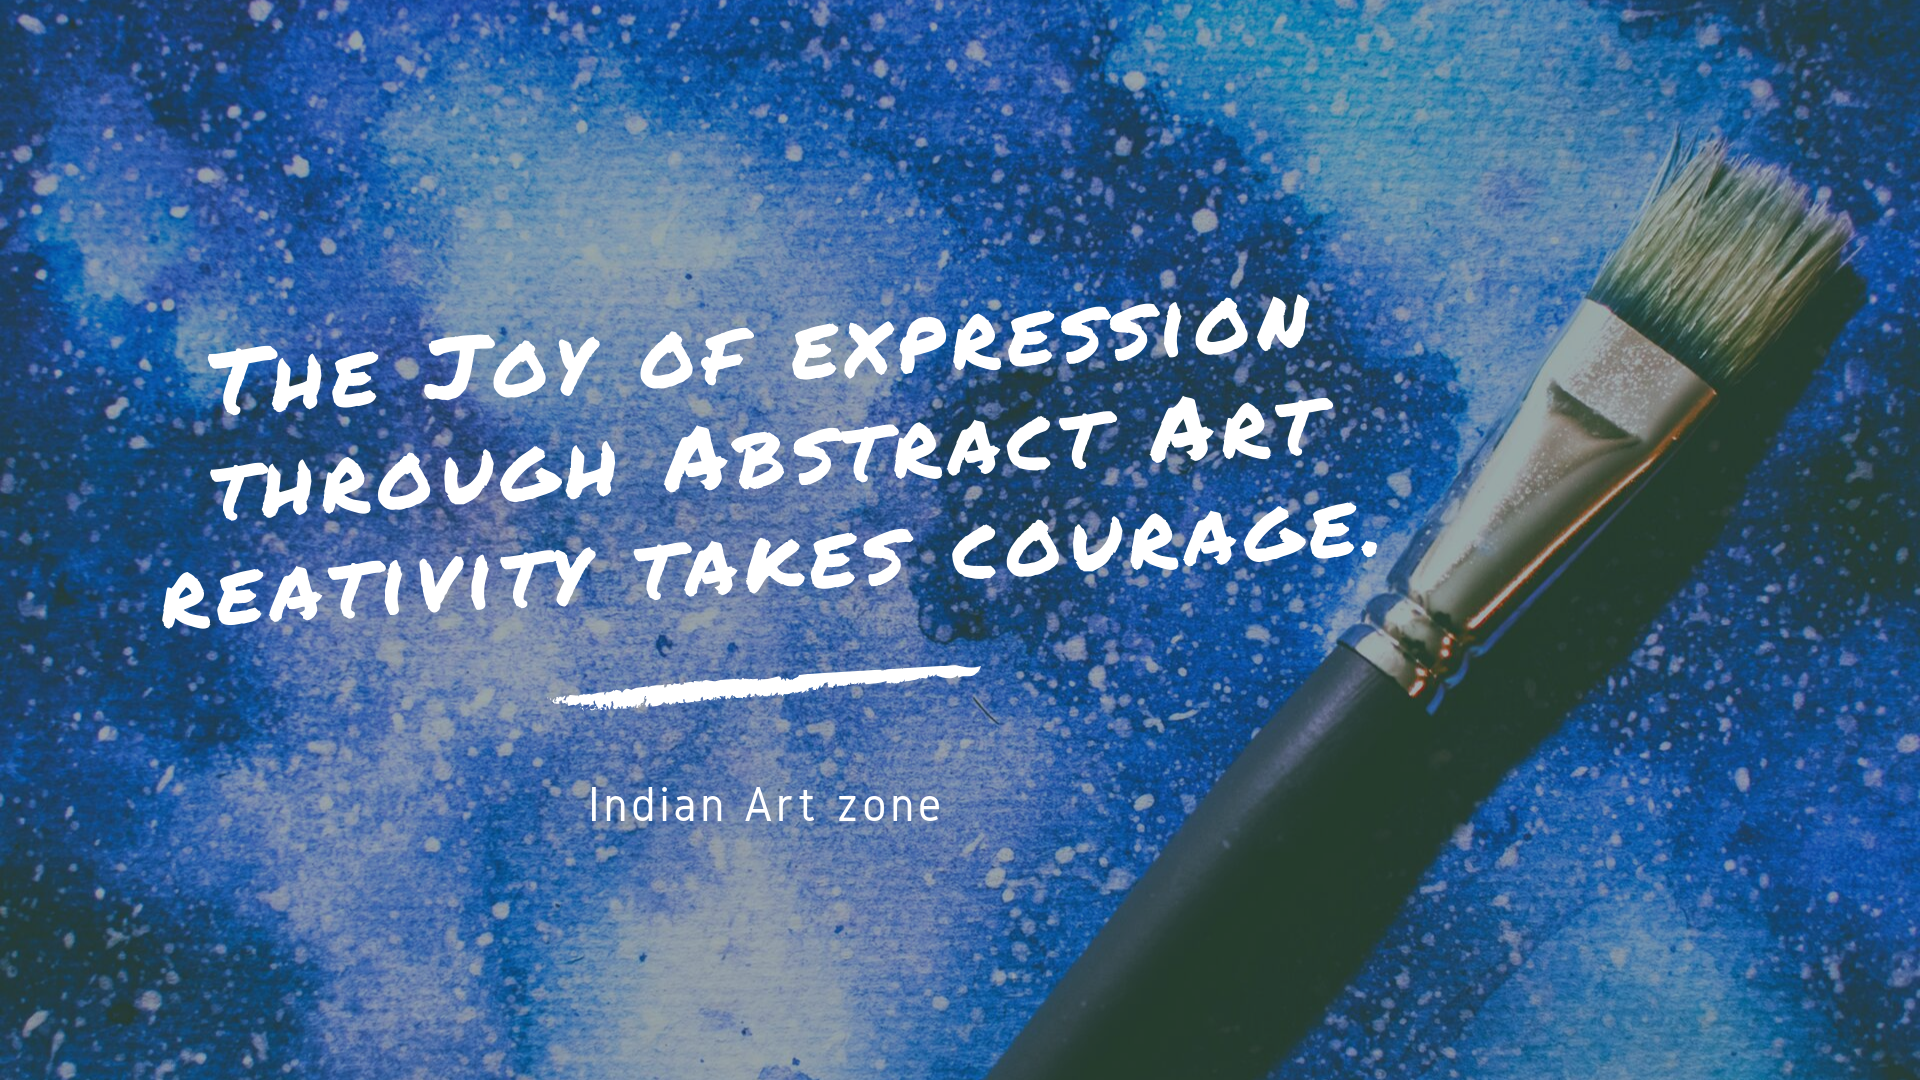 The Joy of expression through Abstract Art